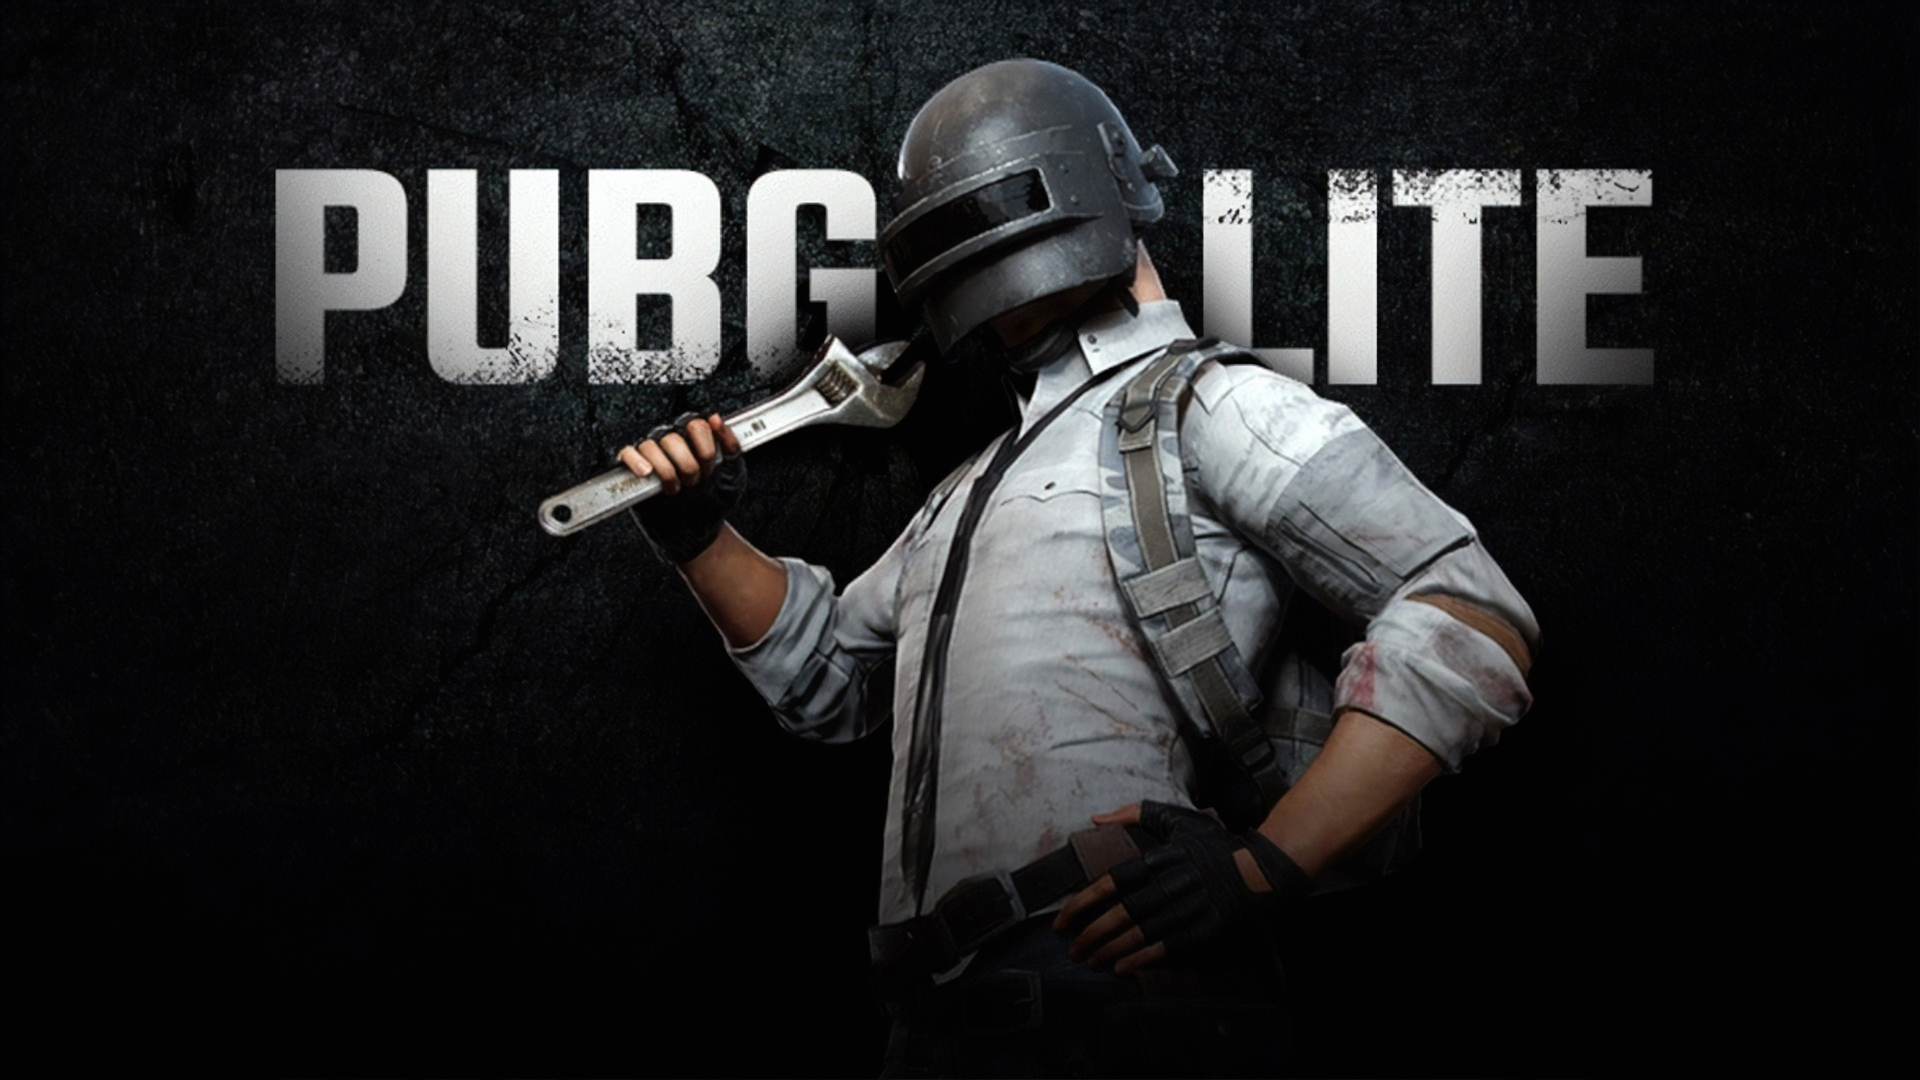 Pubg Lite Hd Games 4k Wallpapers Images Backgrounds